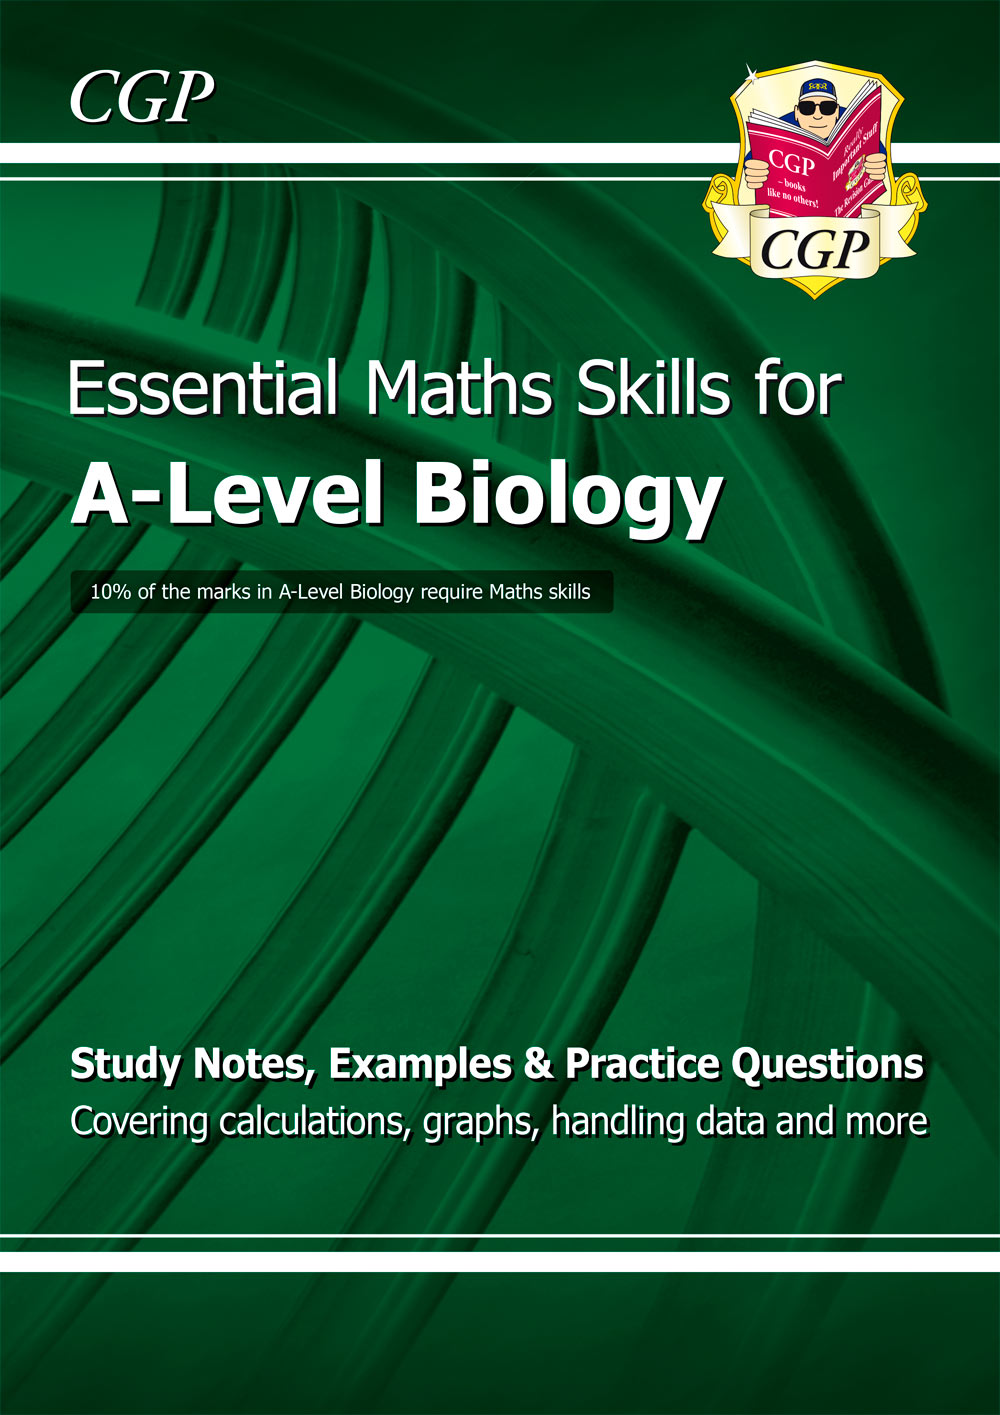 BMR71 - A-Level Biology: Essential Maths Skills